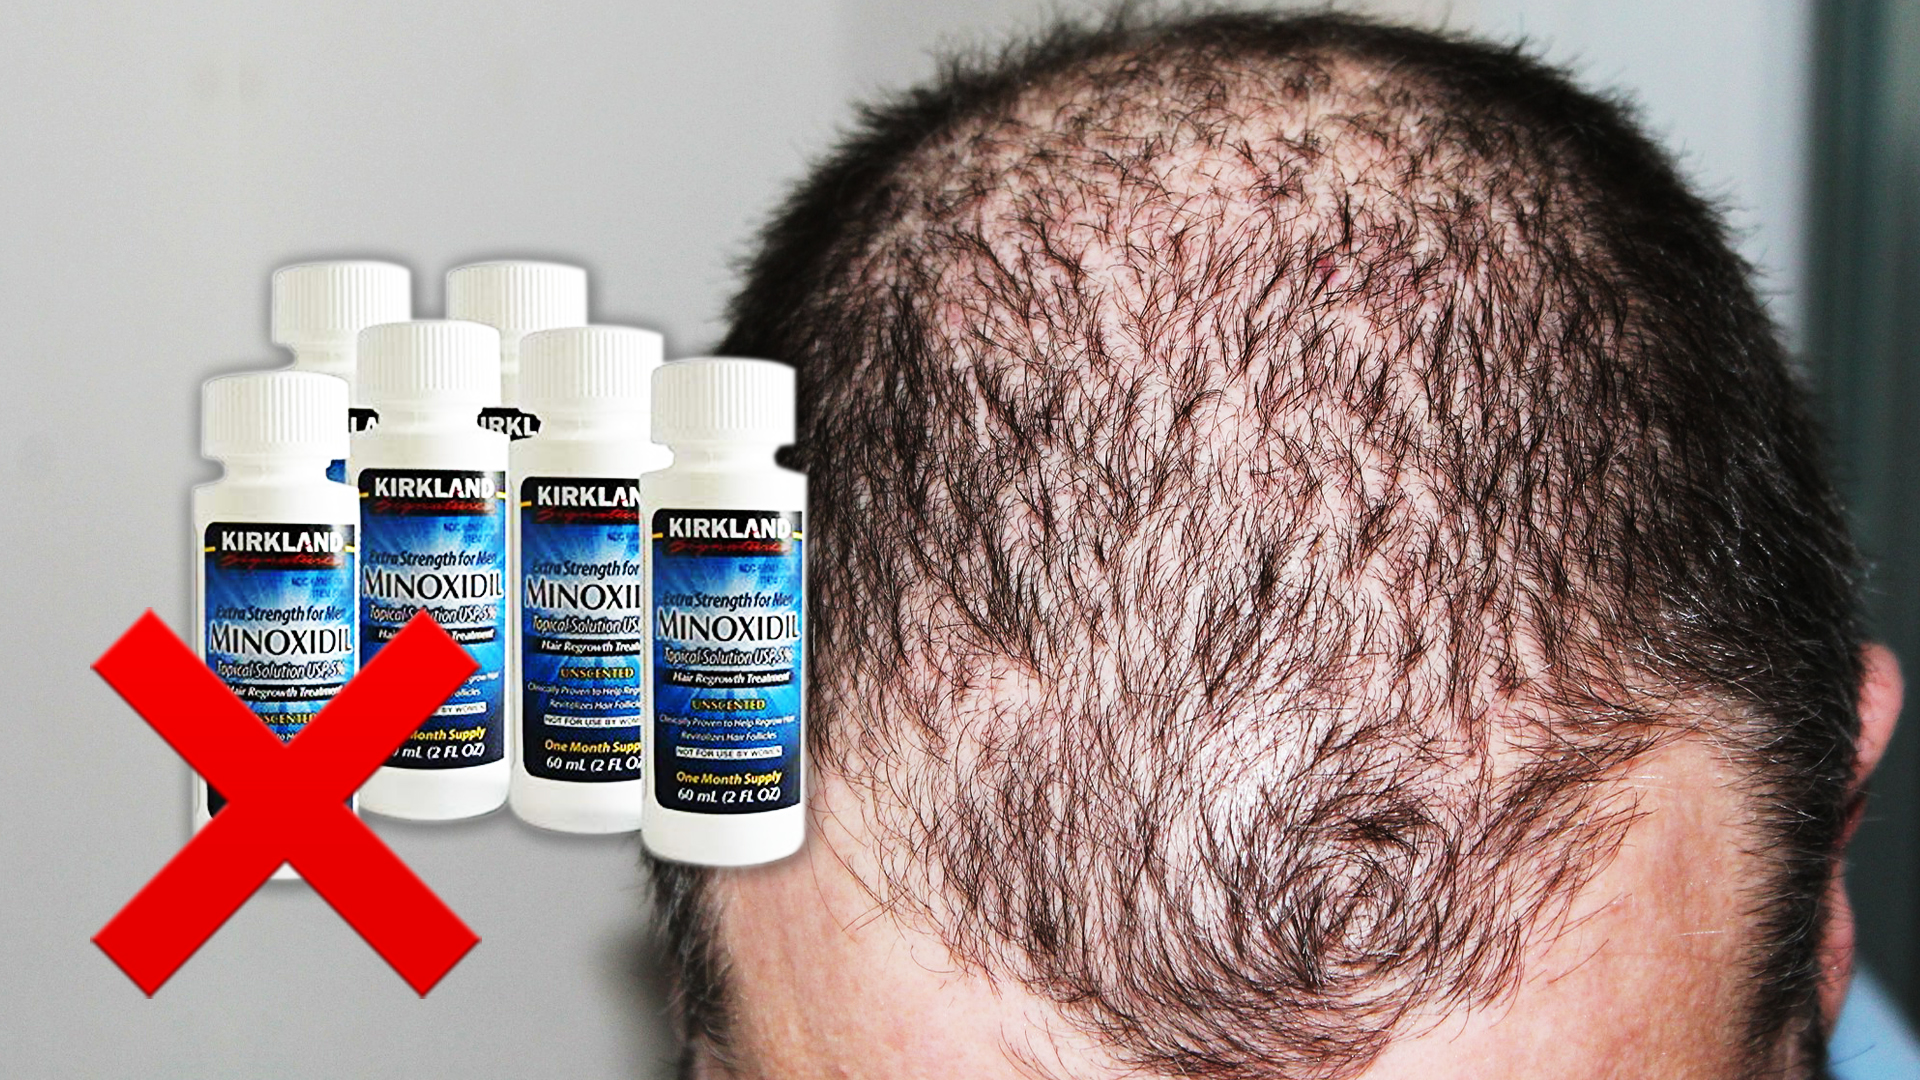 6 bottles of Kirkland Minoxidil beside balding man's head